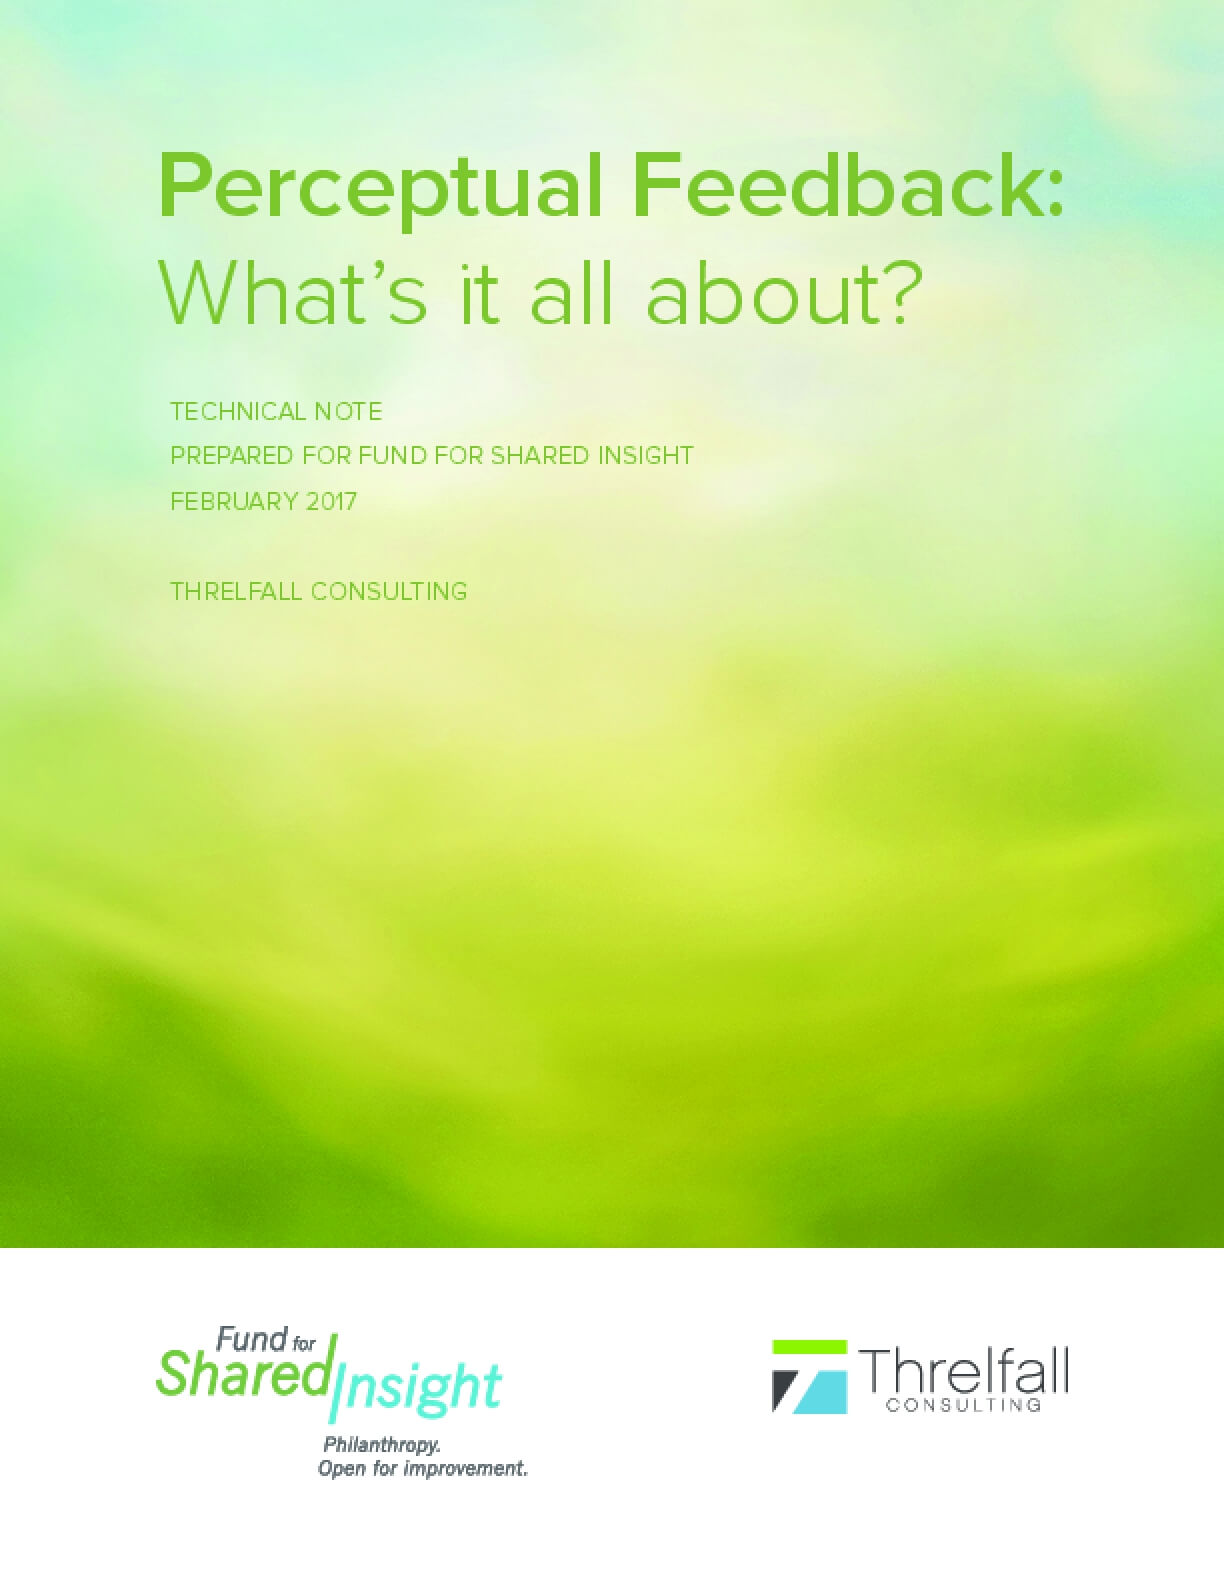 Perceptual Feedback: What's it all about?